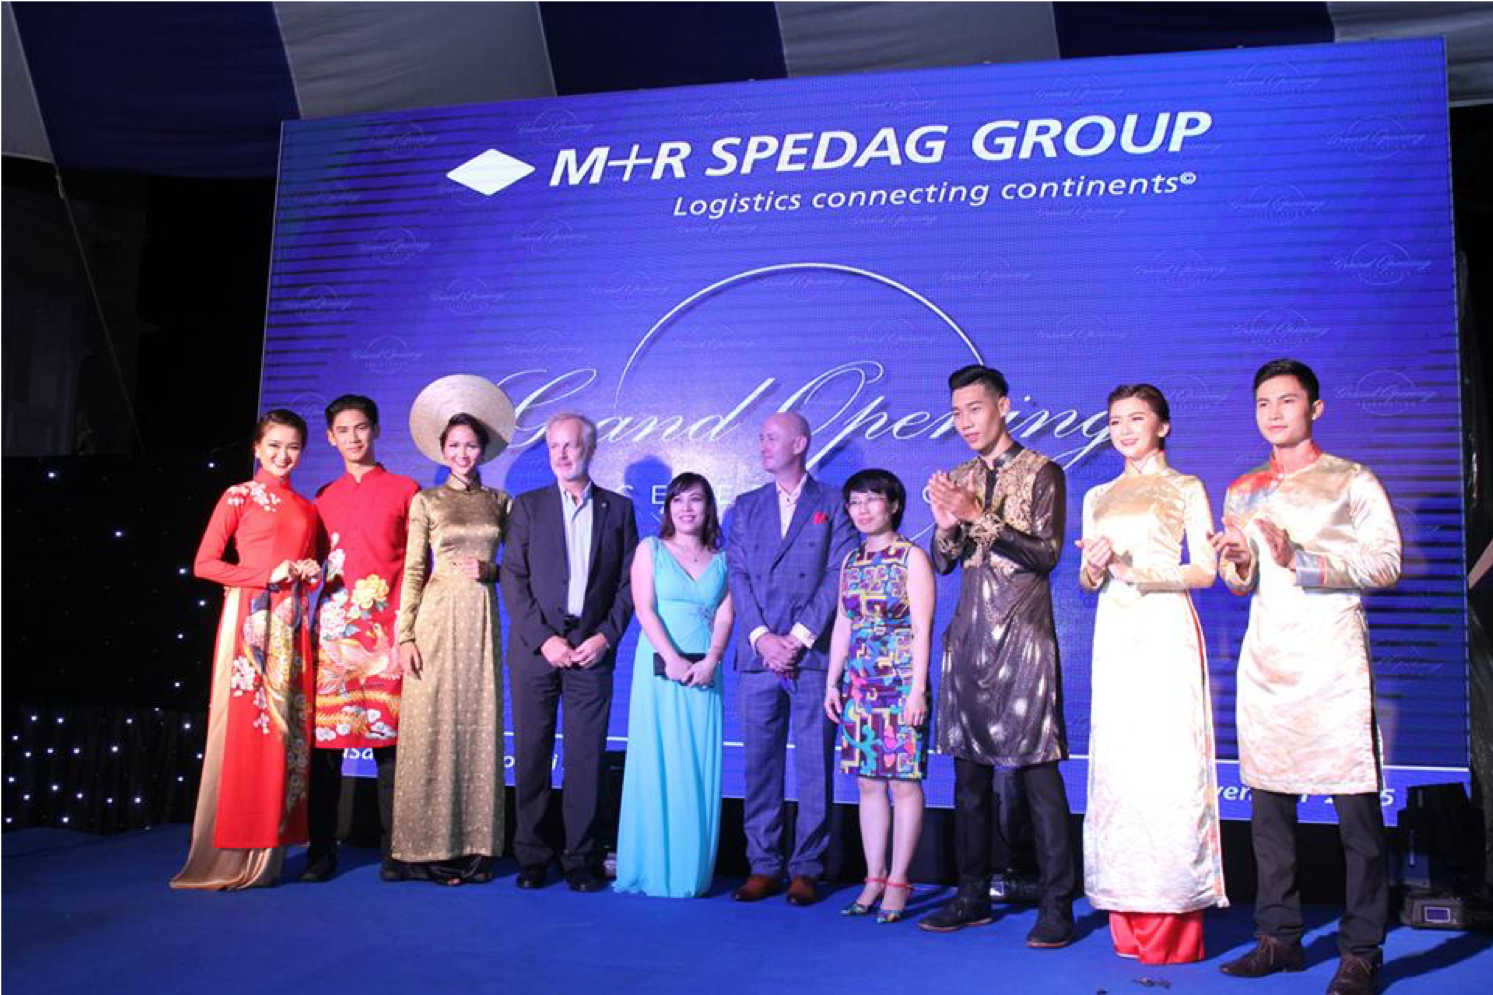 M+R SPEDAG GROUP